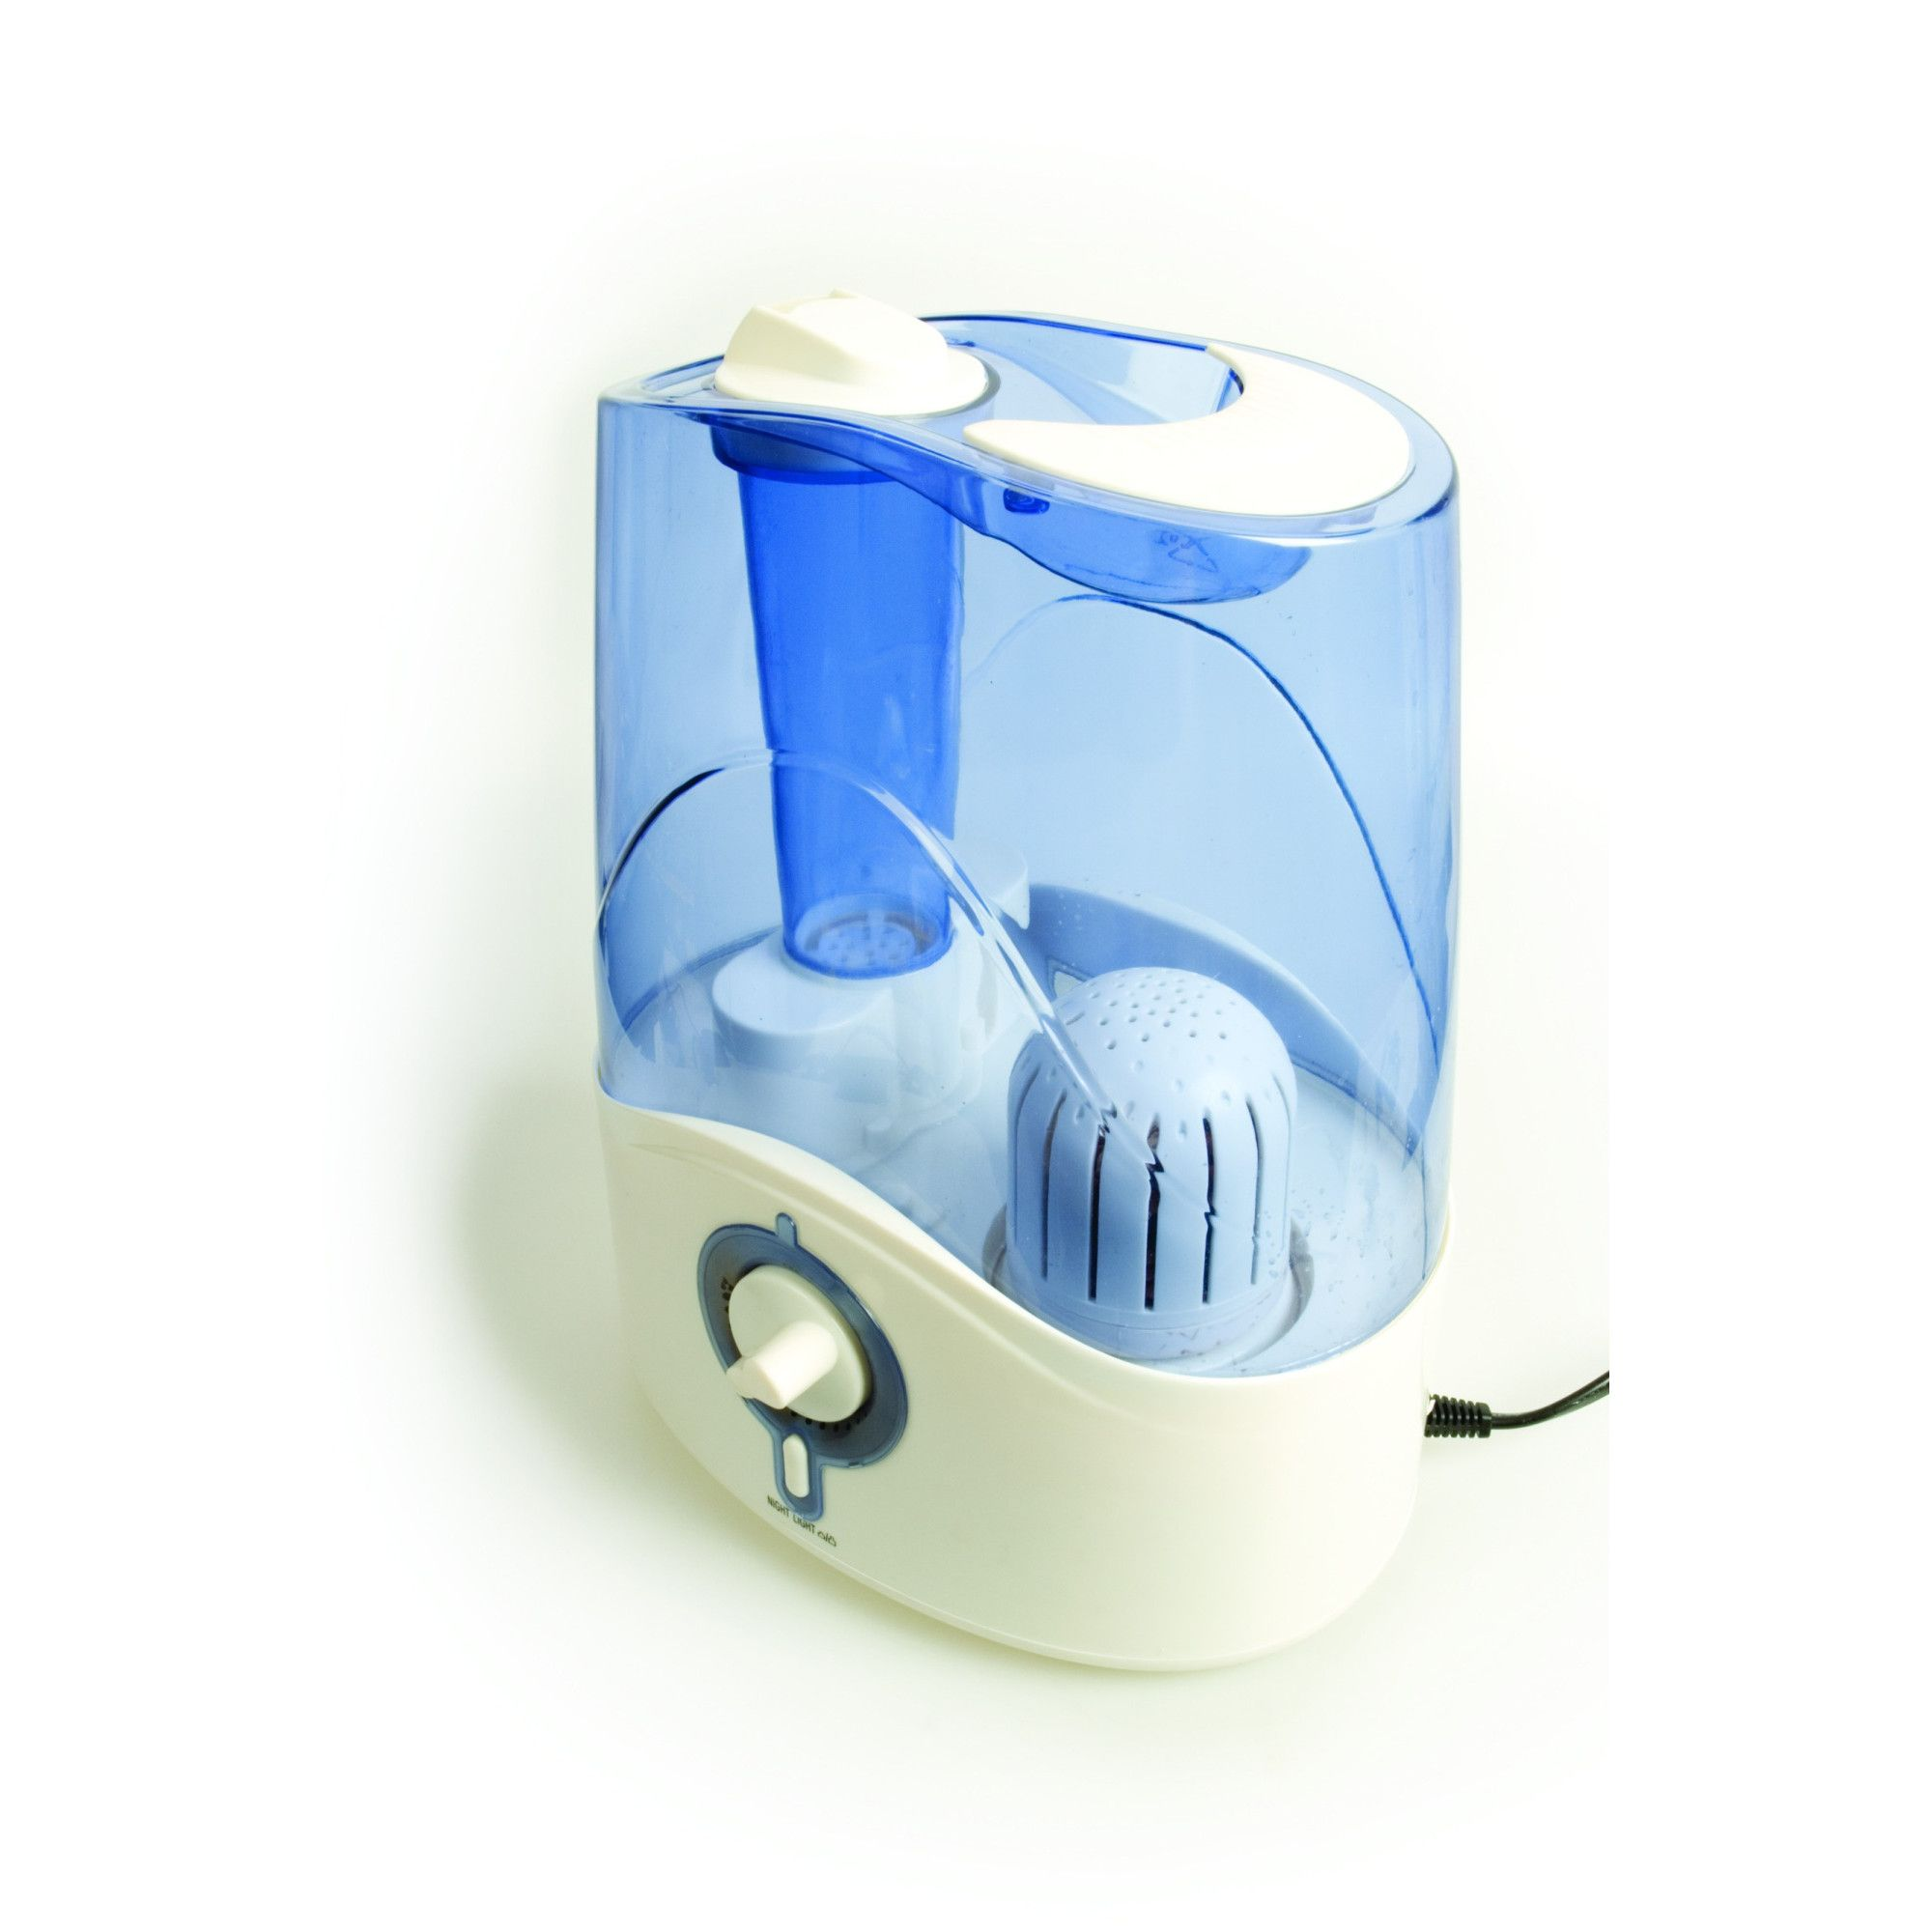 5 Litre Ultrasonic Humidifier.